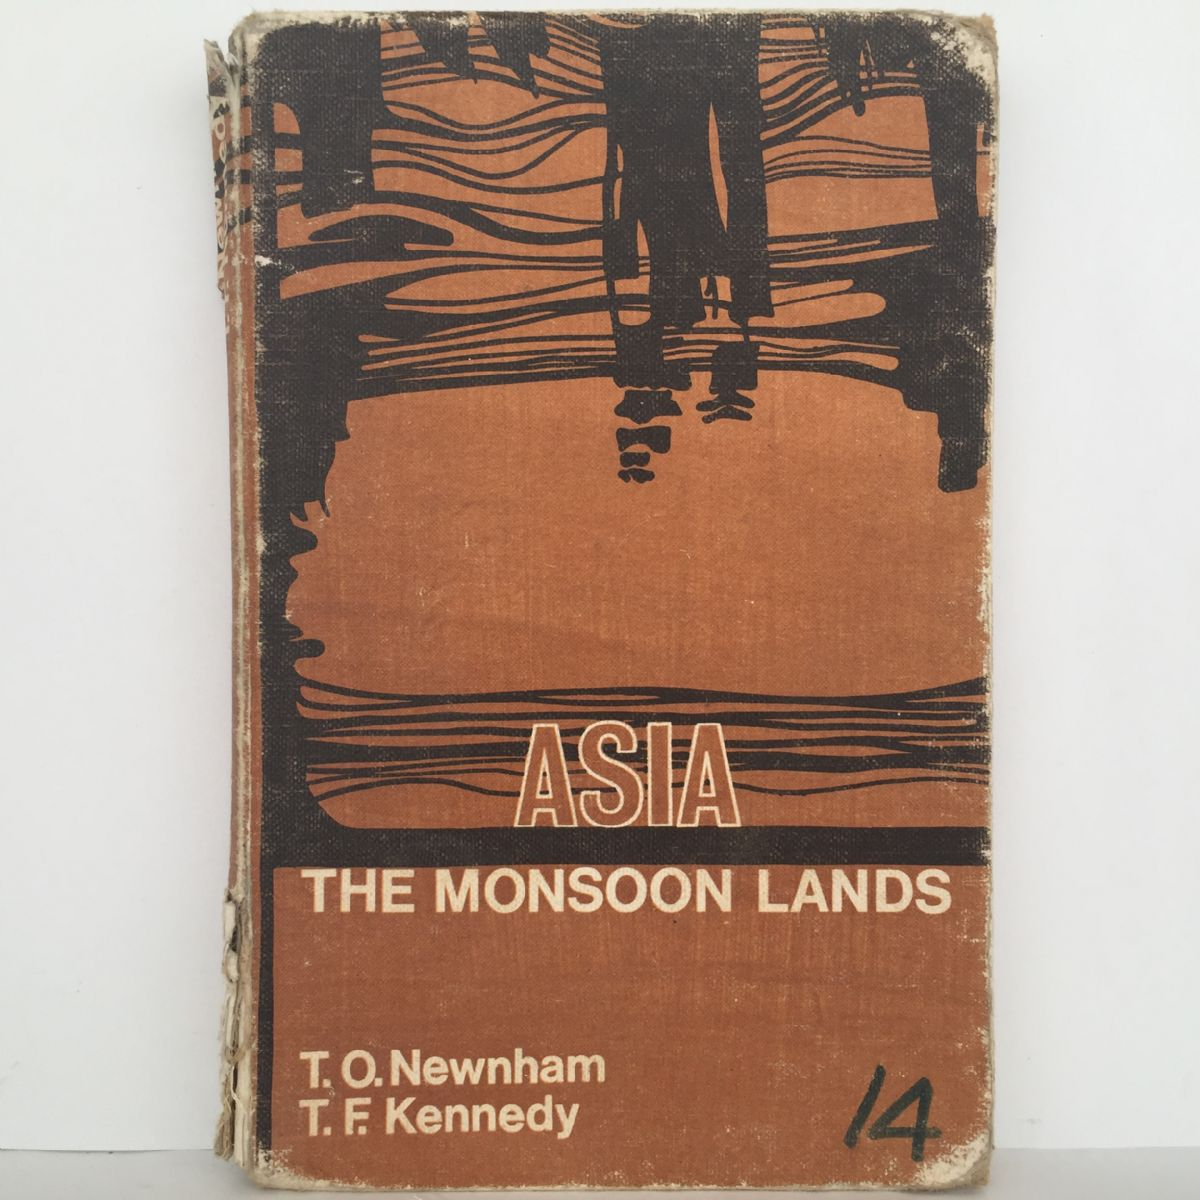 Asia: The Monsoon Lands